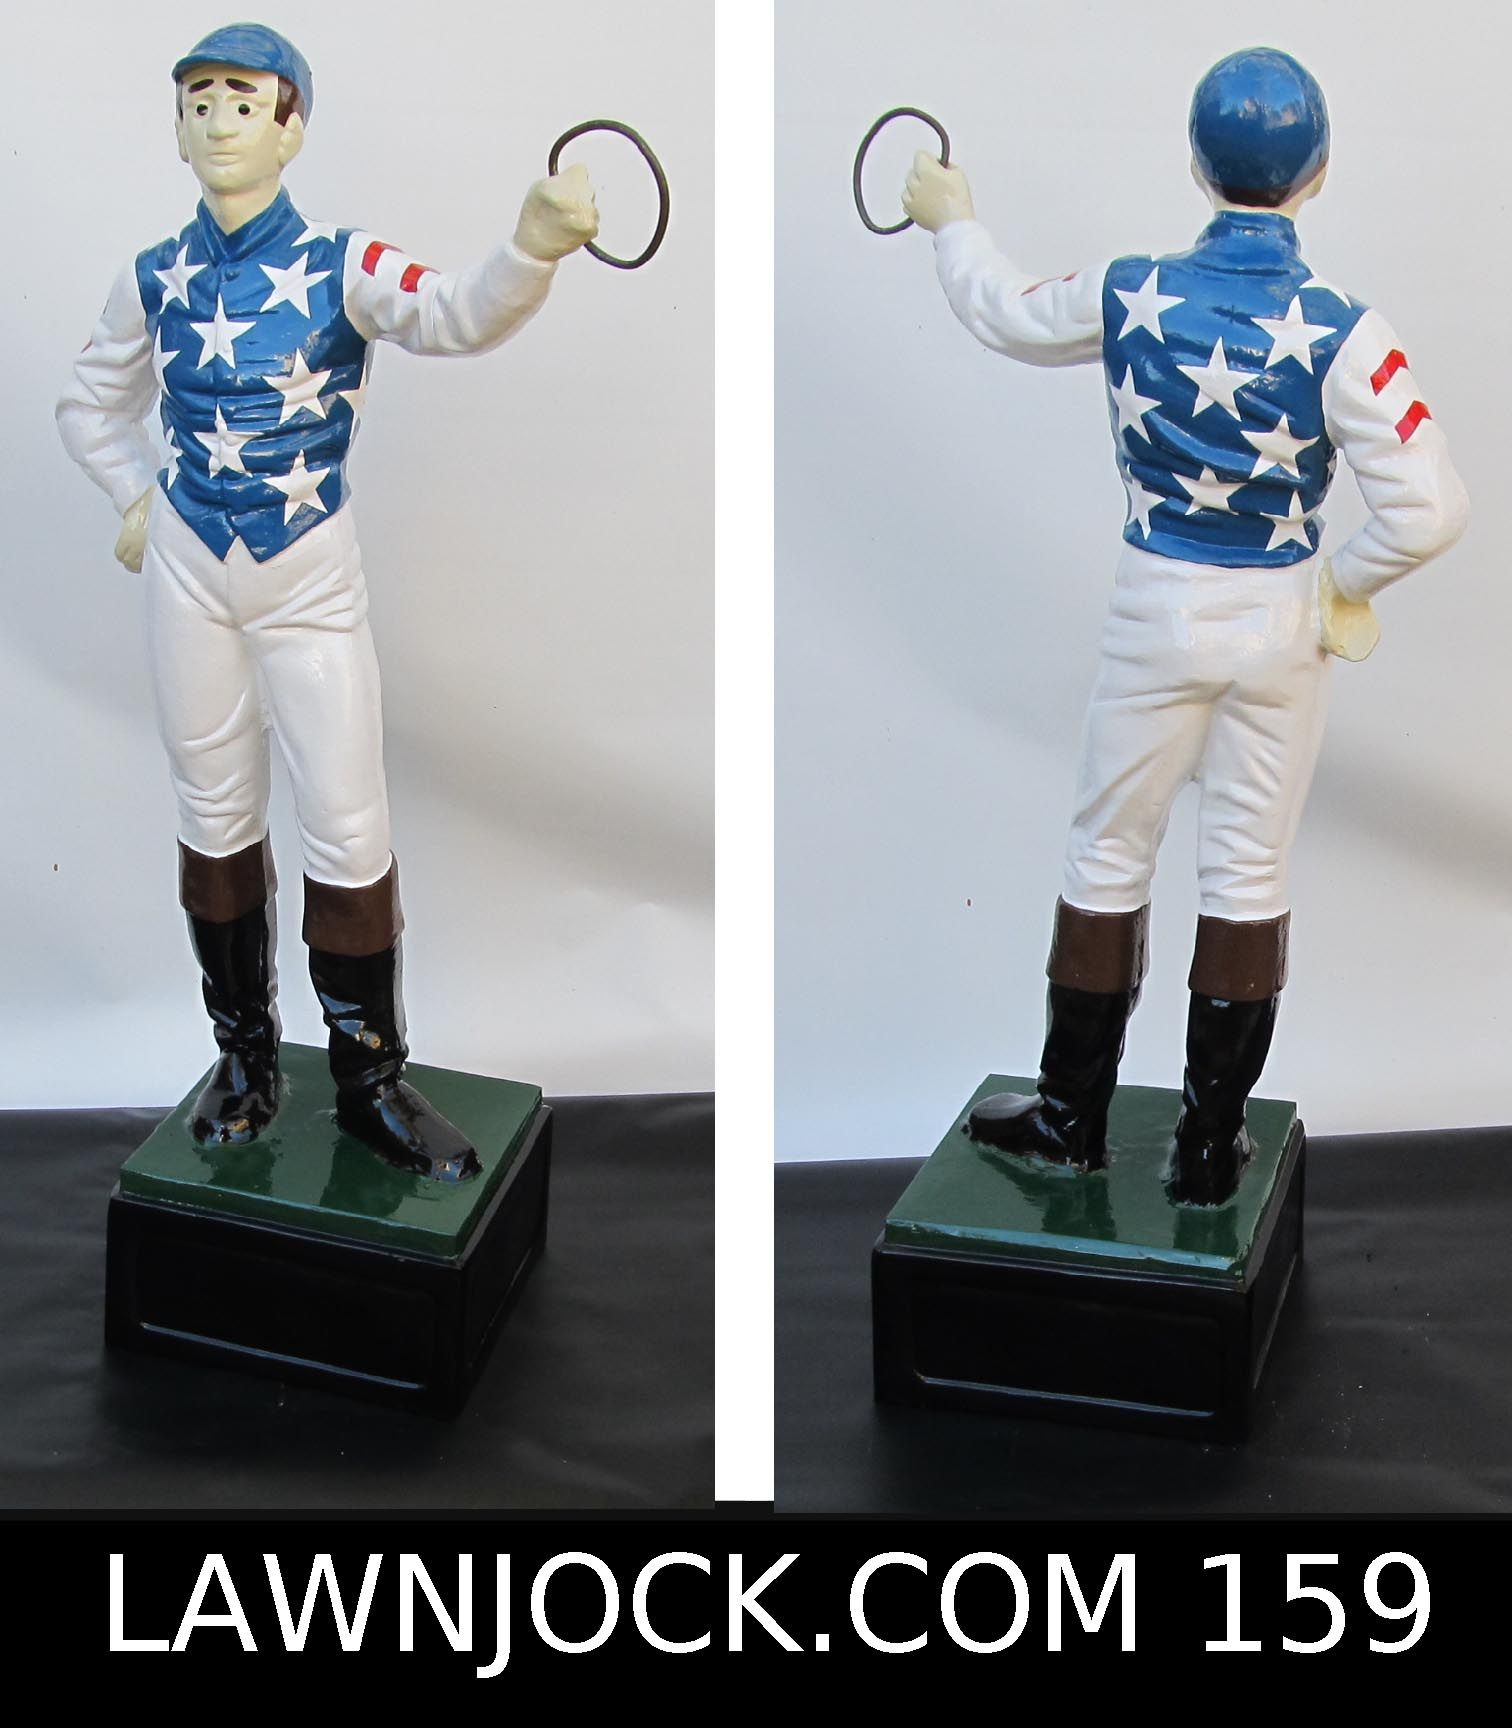 The traditional lawn jockey statue is taking back America's boring suburban neighborhoods one yard at a time. Your lawn is next! Want an REAL METAL jock professionally painted using 2 coats of high gloss enamel like this one shipped directly to your mansion in about 3 weeks? Visit lawnjock.com for a price quote today and reference custom example #159.